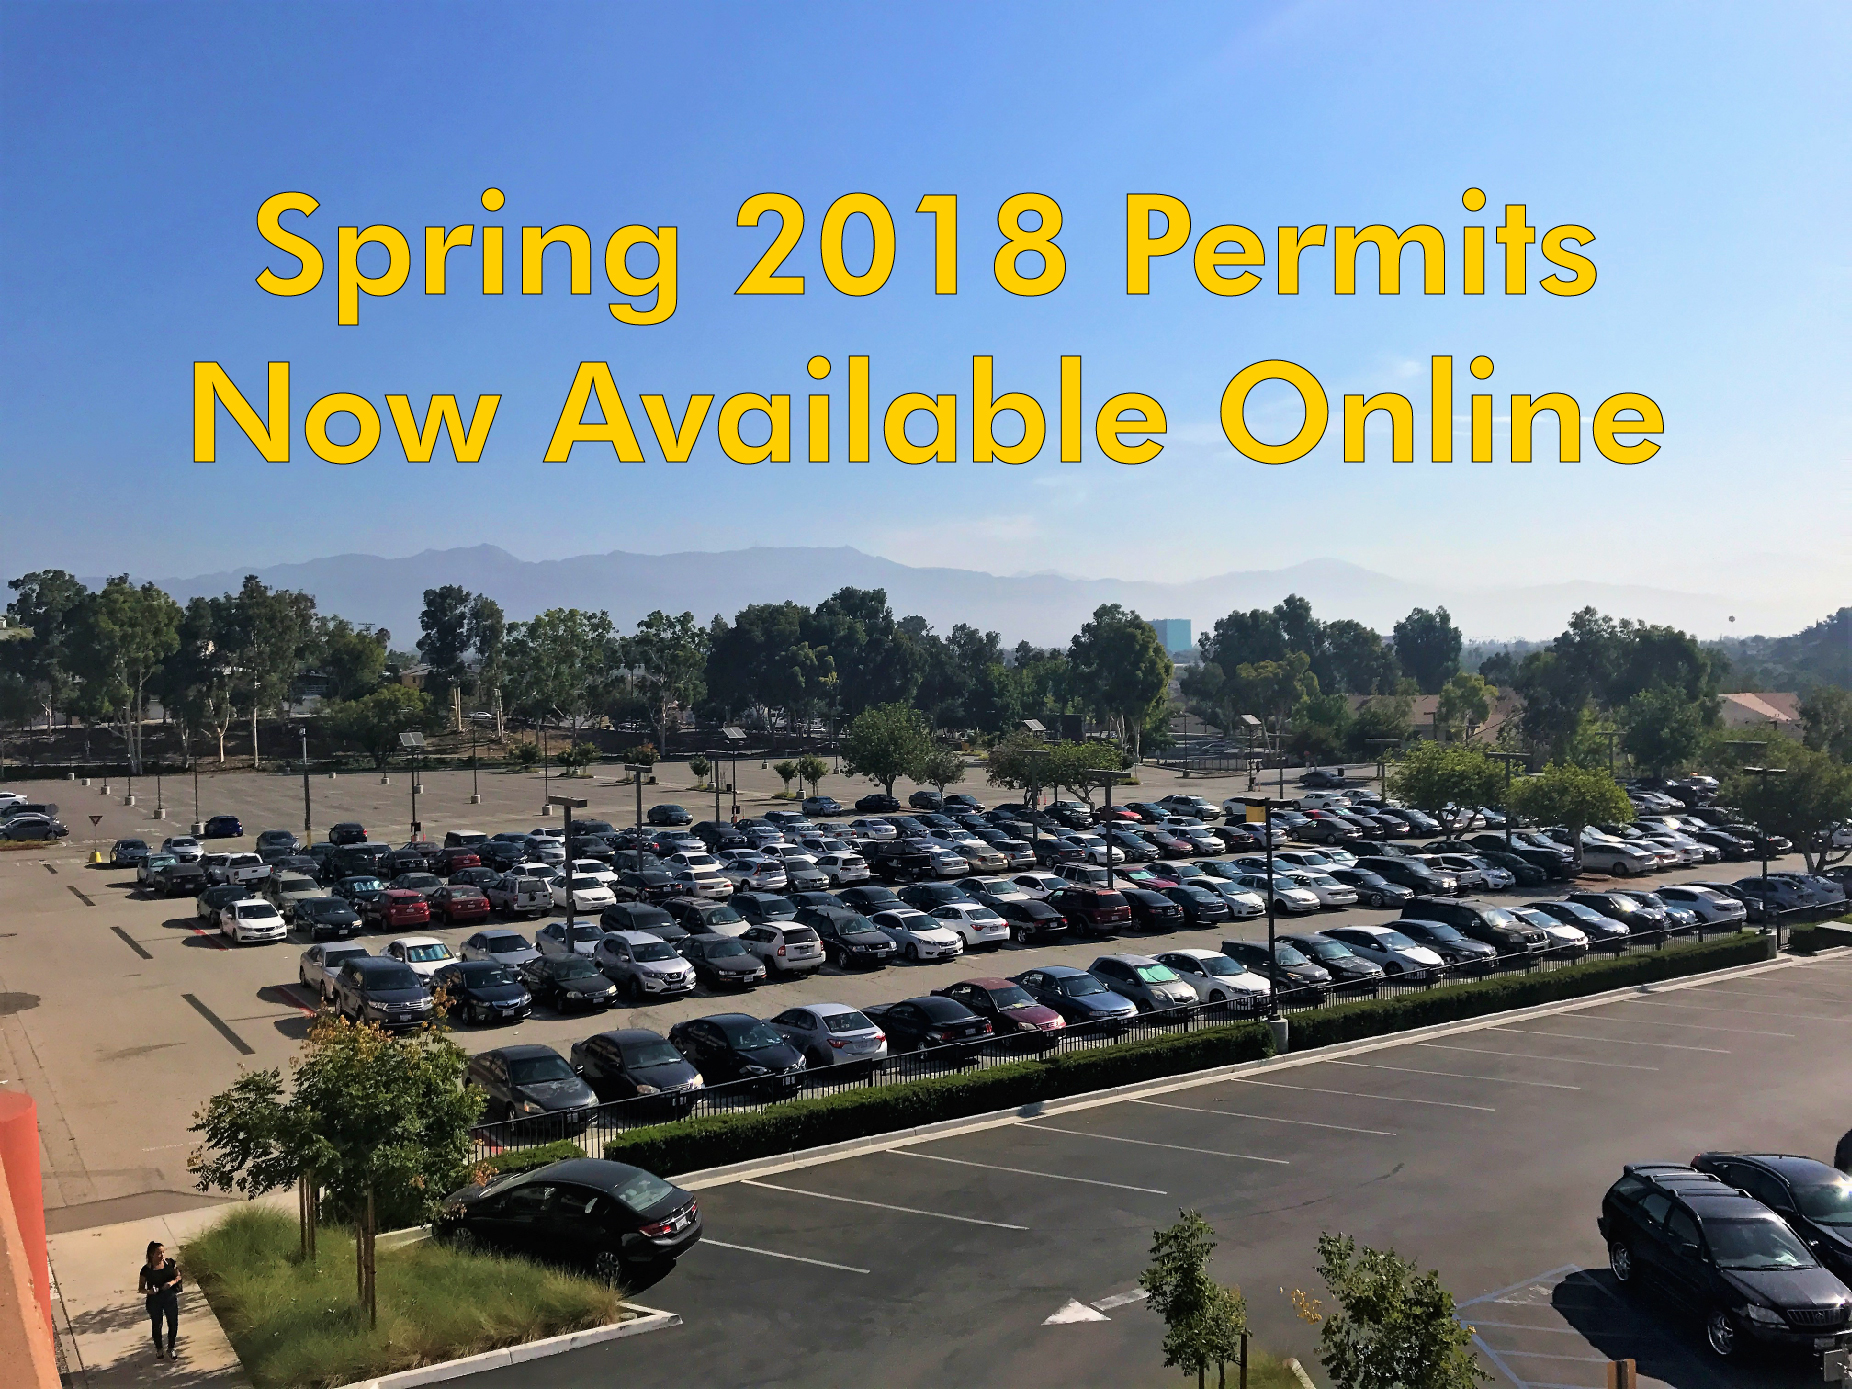 Spring 2018 Permits Available Online